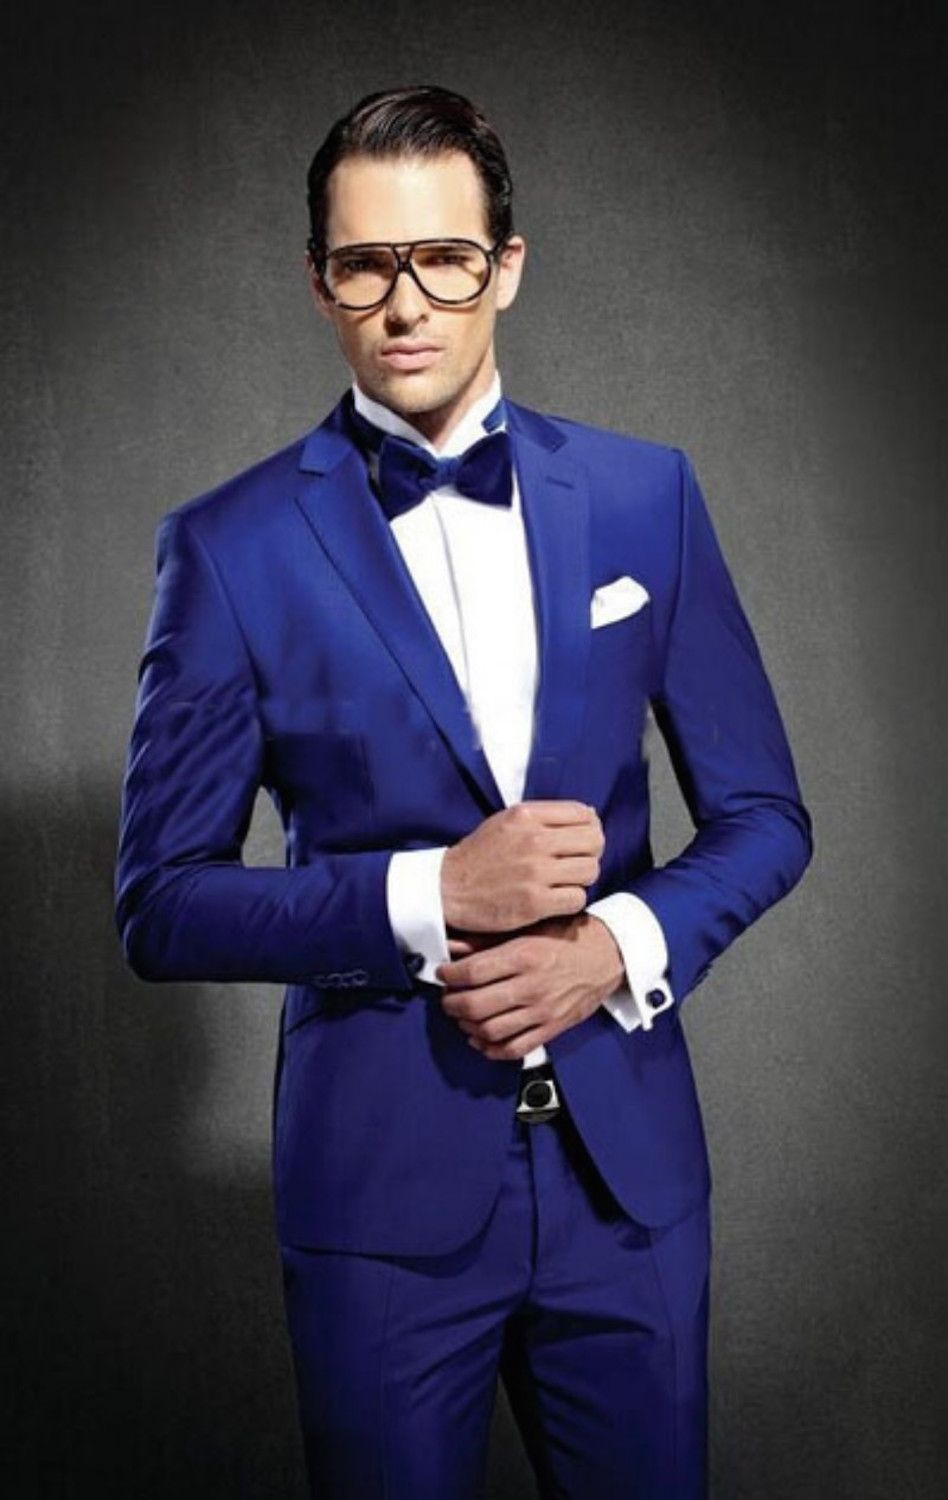 Cheap prom tuxedo, Buy Quality slim fit suit directly from China slim fit  business suit Suppliers: 2015 Business Men Slim Fit Suits Groom Tuxedos  Royal Blue ...